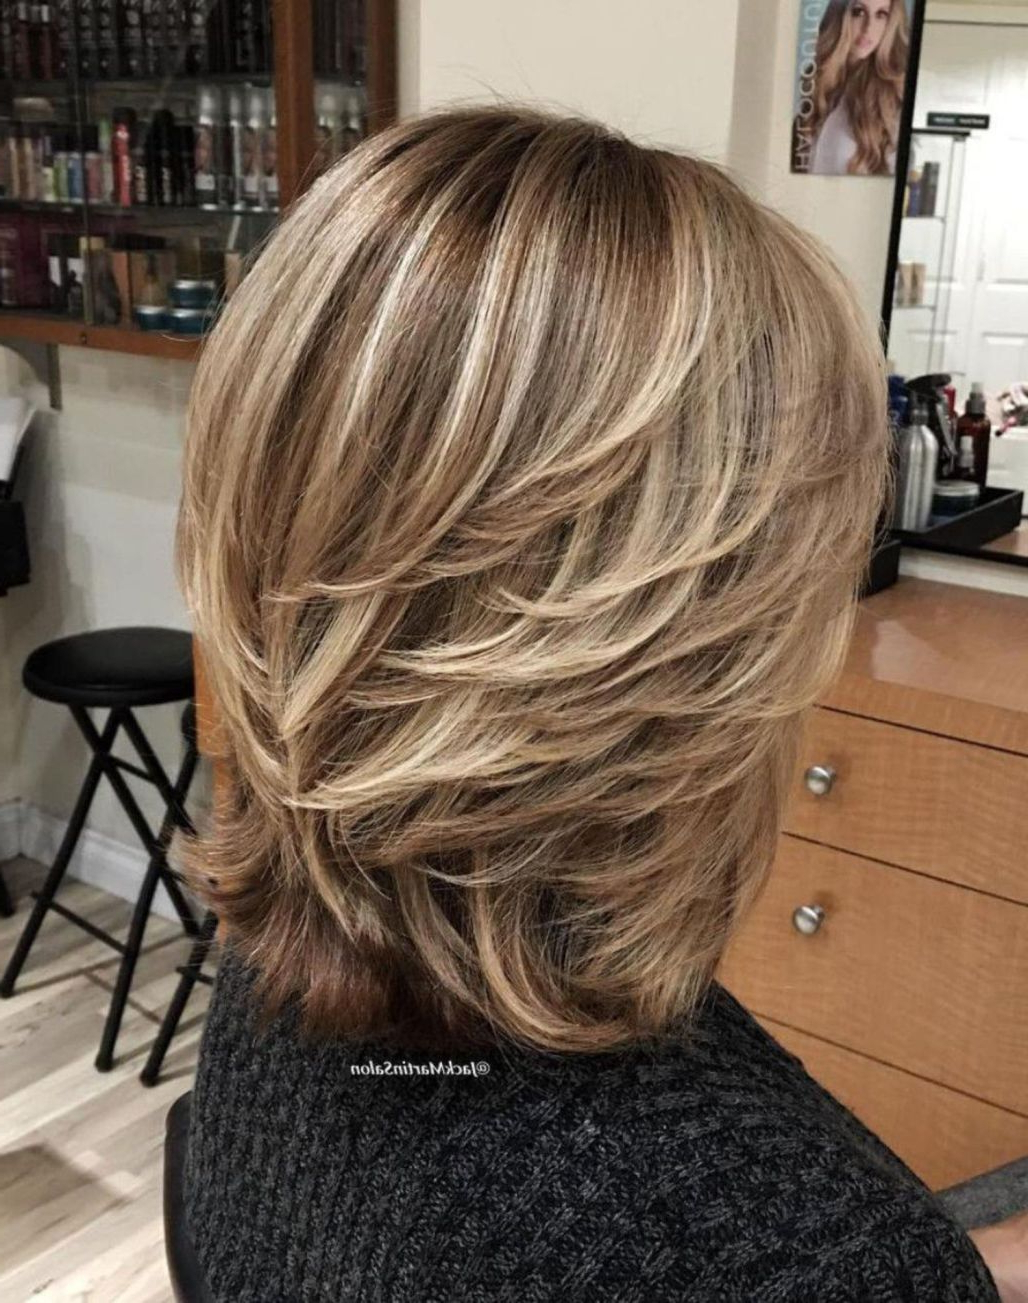 80 Best Modern Haircuts And Hairstyles For Women Over 50 In 2018 Regarding Current Swoopy Layers Hairstyles For Voluminous And Dynamic Hair (Gallery 10 of 20)